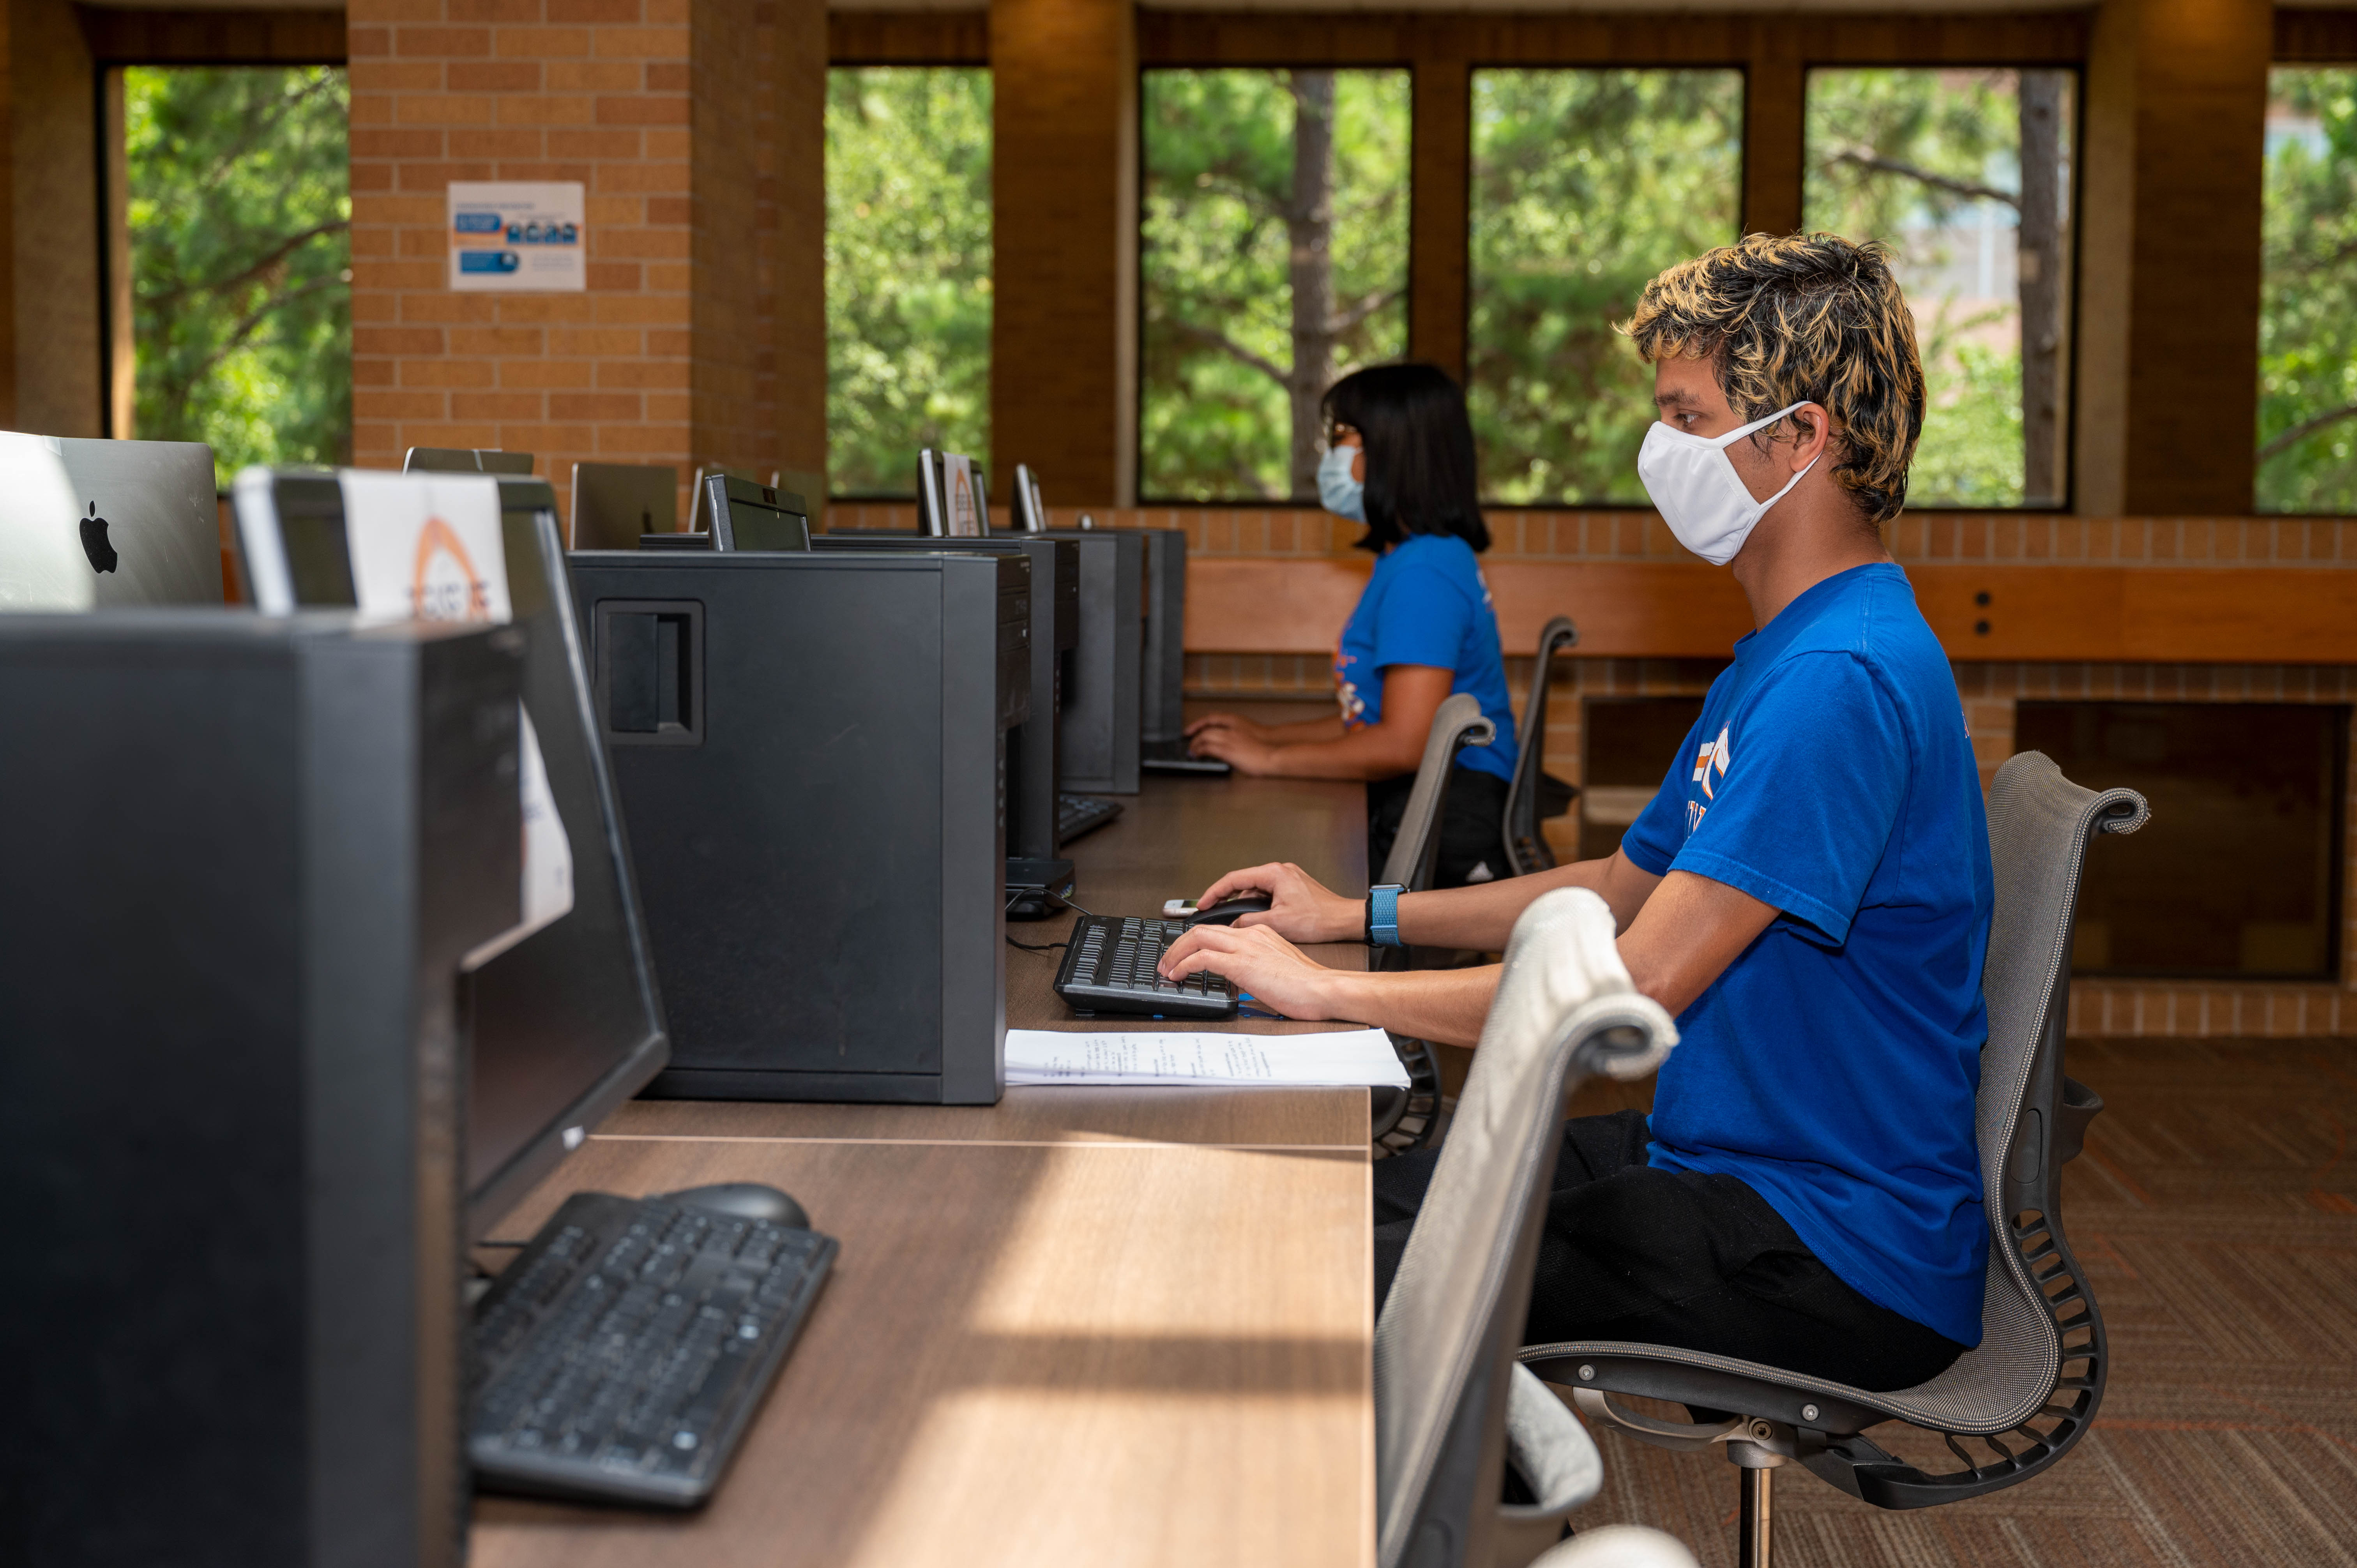 UTA students wearing face coverings in a socially distant computer lab